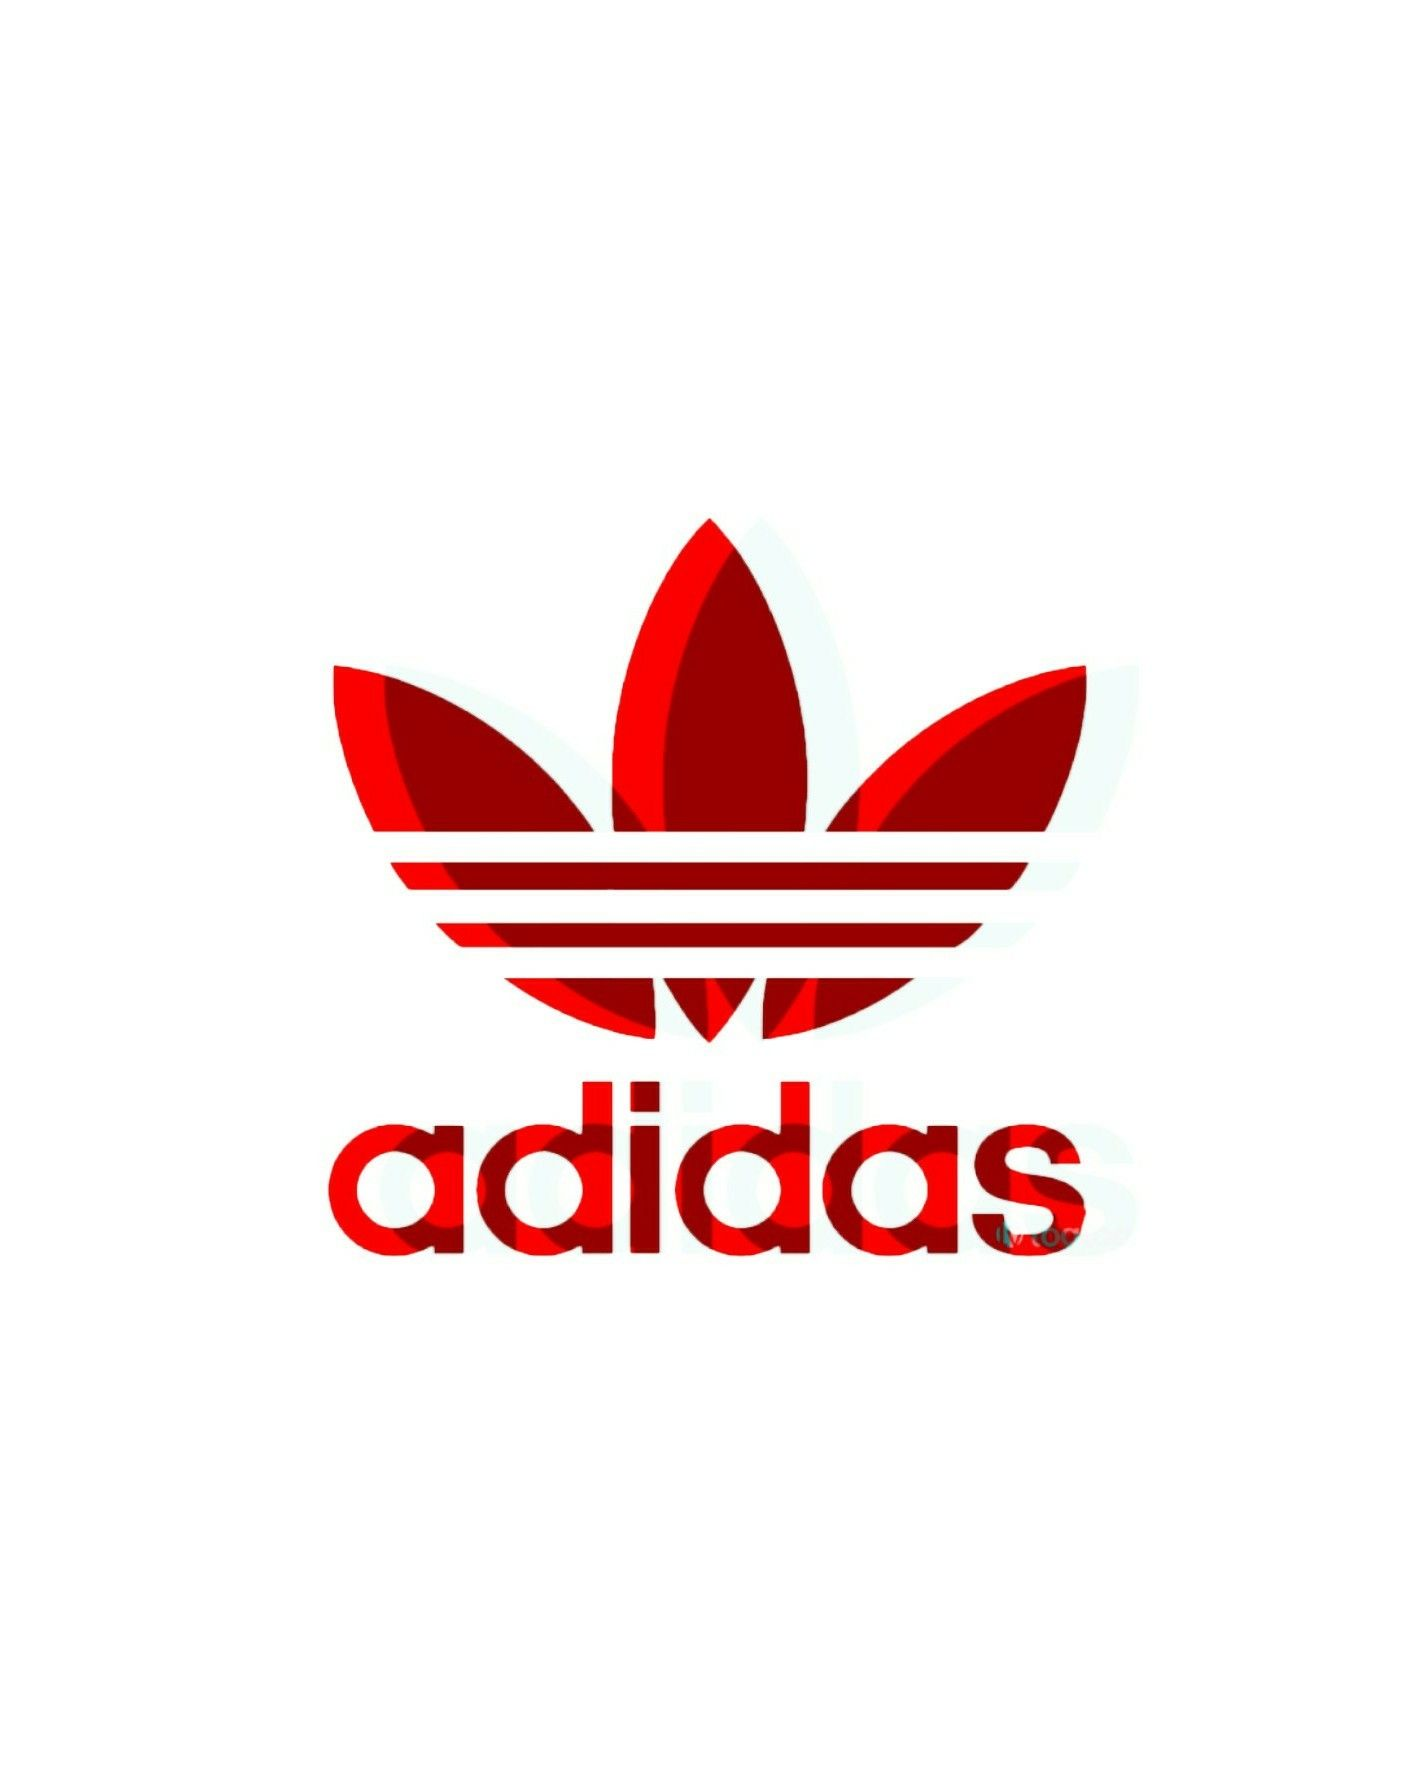 musical pico La Internet  Pin by Edwin on aDIDAs | Adidas logo wallpapers, Adidas wallpapers, Adidas  art